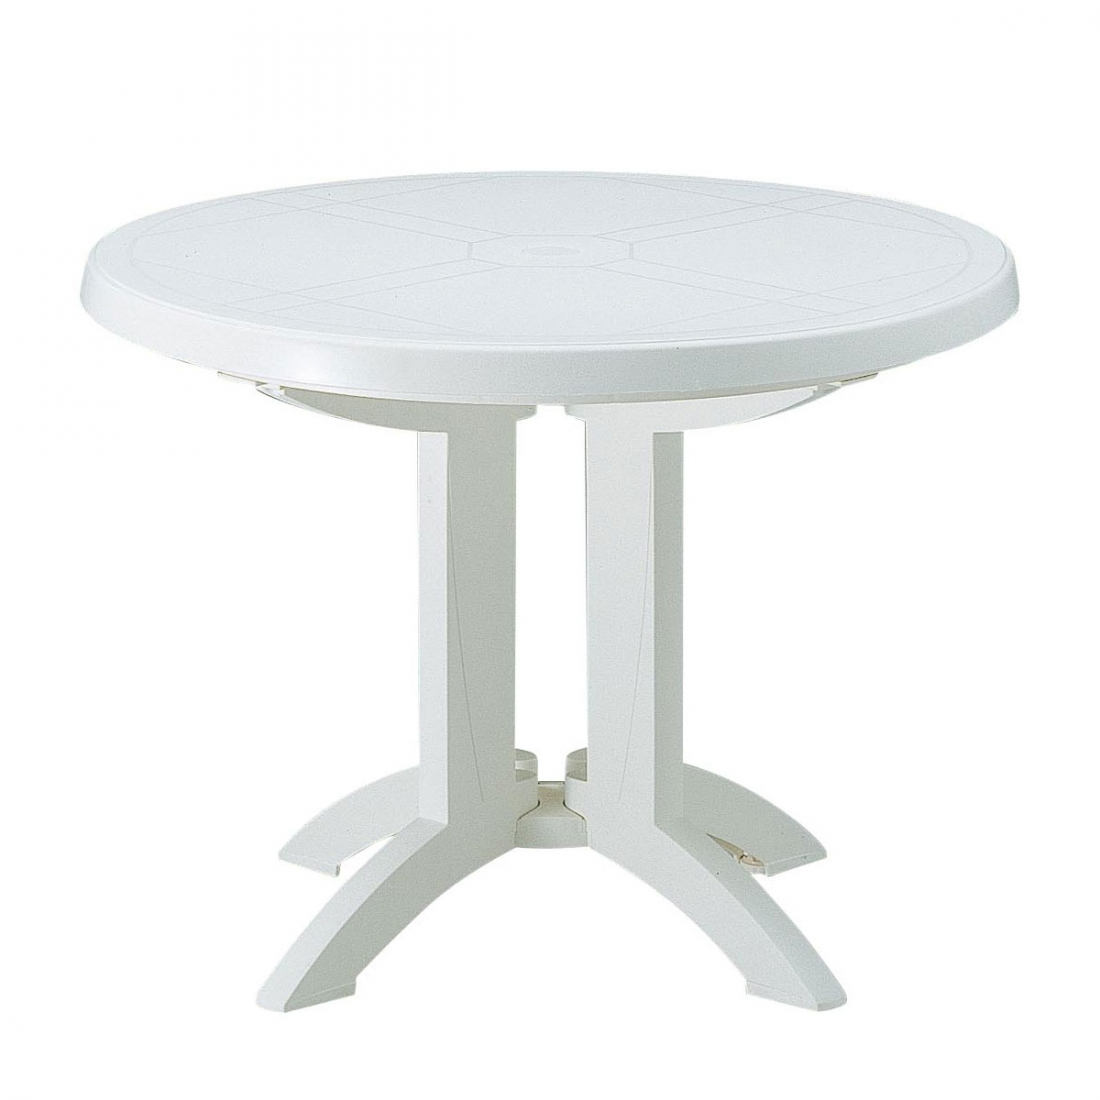 Beautiful table de jardin ronde vega grosfillex gallery for Table ronde escamotable